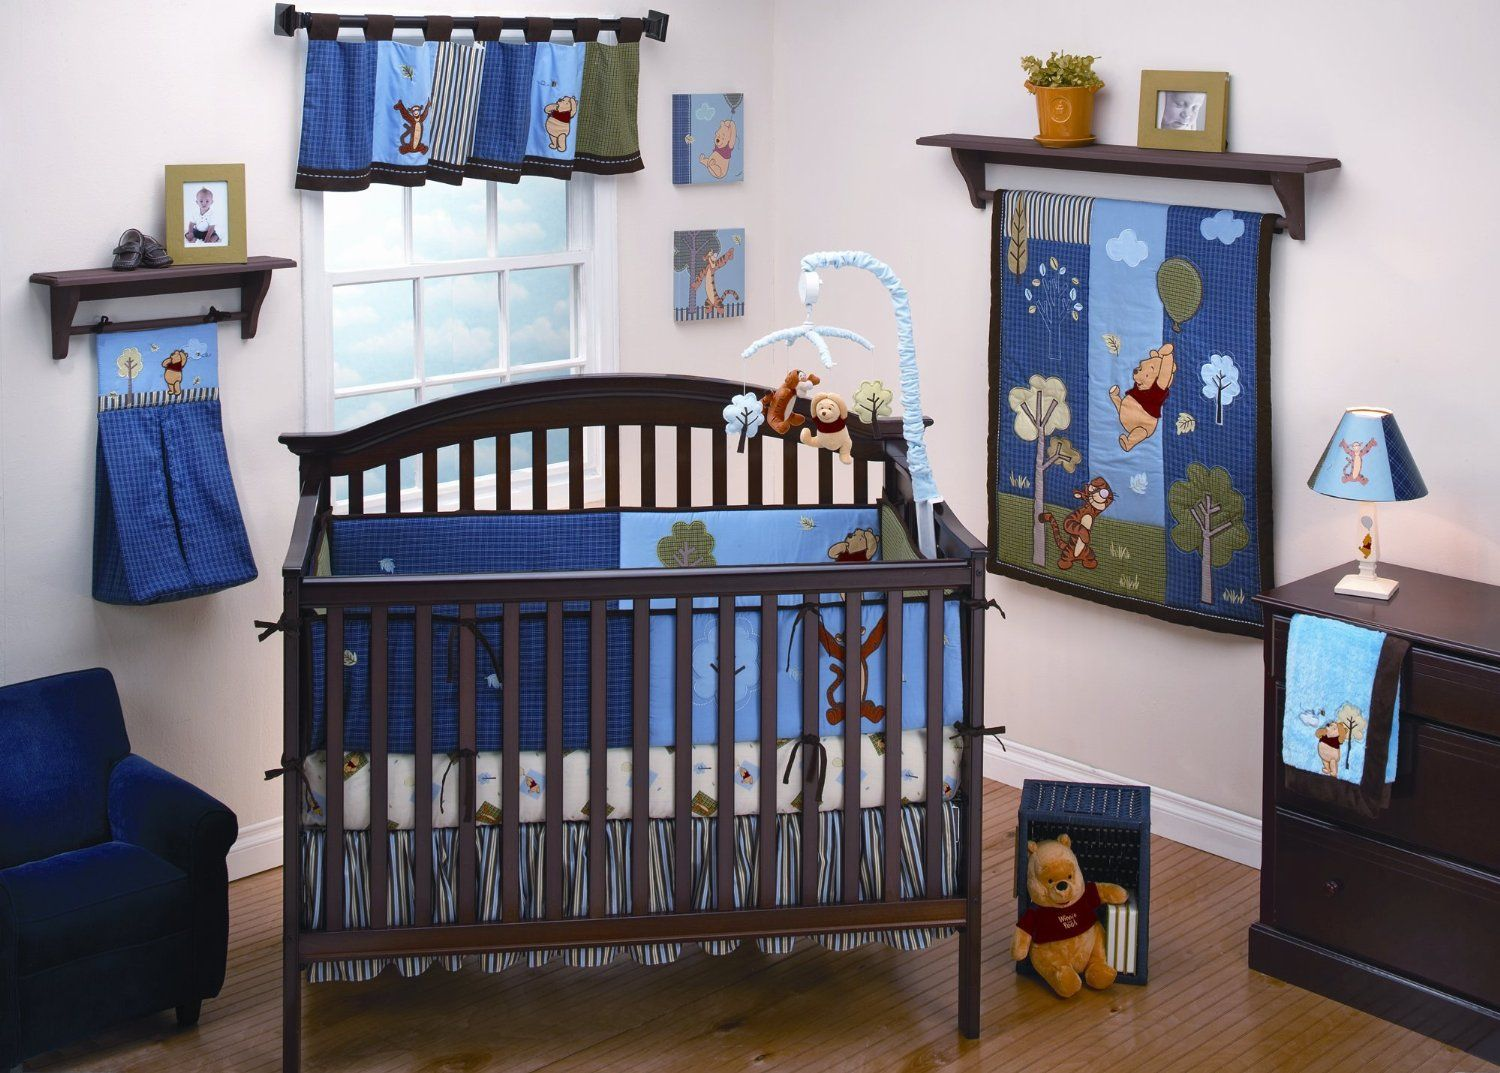 Baby cribs amazon - Winnie The Pooh Baby Bedding Up And Away